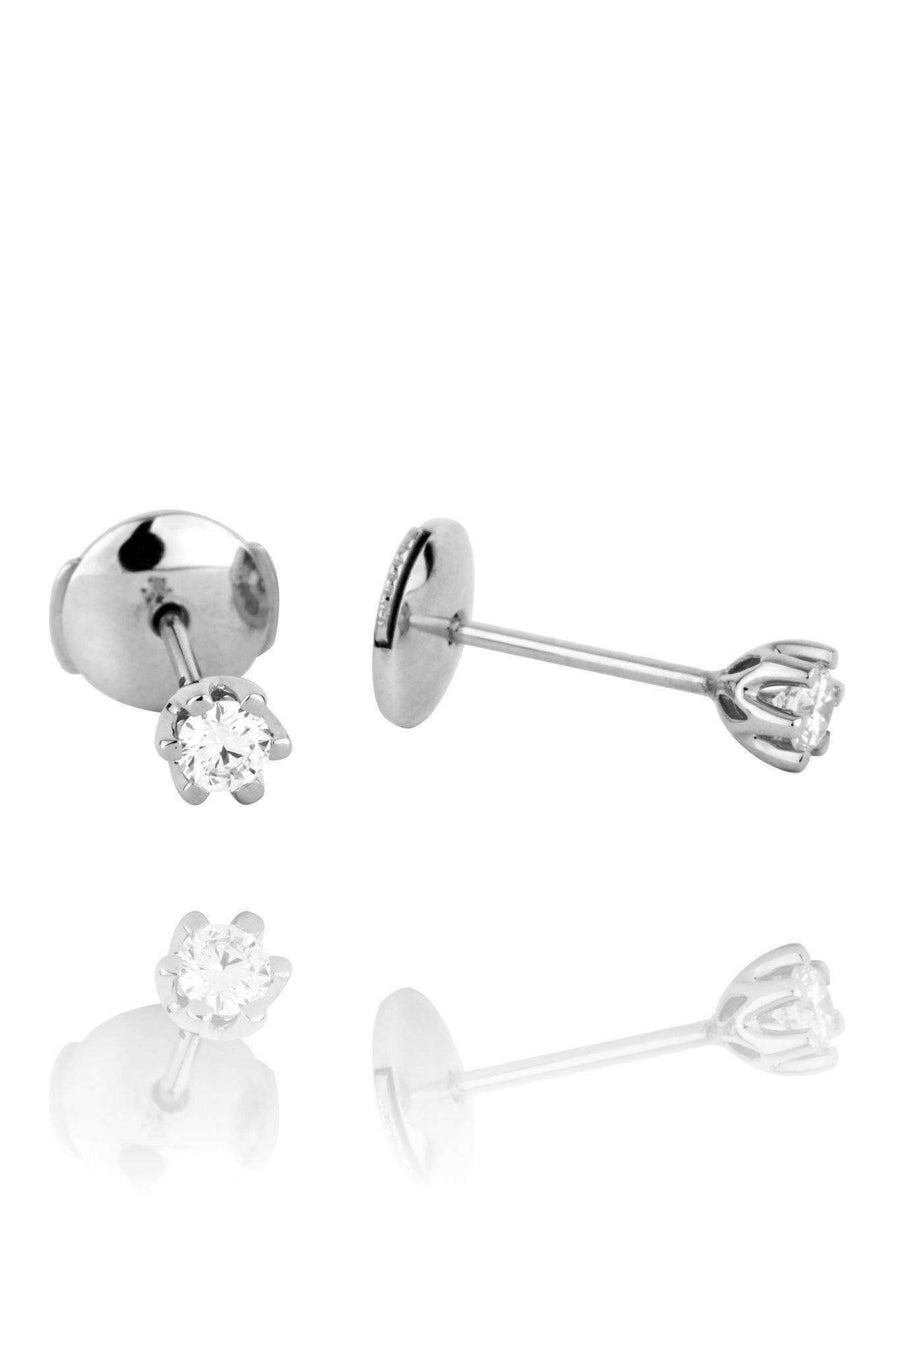 Stellar Solitaire Diamond Stud Earrings Earrings Lark and Berry Pair .21ct White Gold